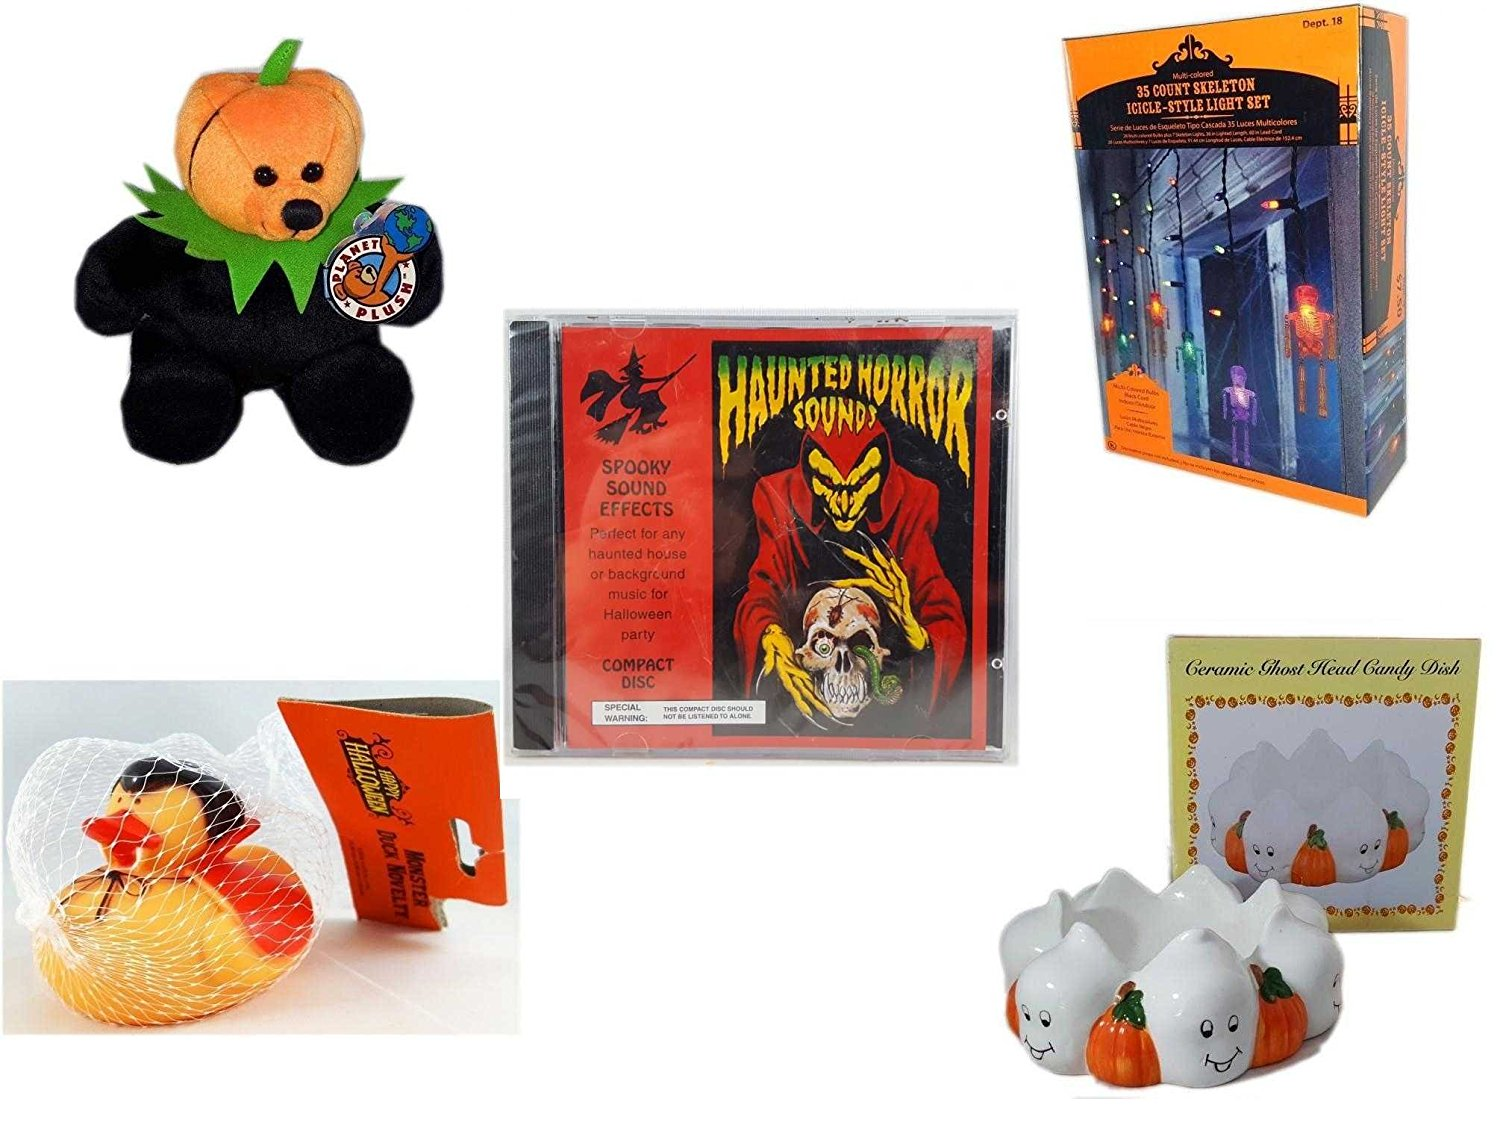 """Halloween Fun Gift Bundle [5 piece] - Jacko The Halloween Beanie Bear Limited Edition Collectible 7"""" - 35 Count Skeleton Icicle-Style Light Set - Haunted Horror Sounds CD - Happy Halloween Monster D"""